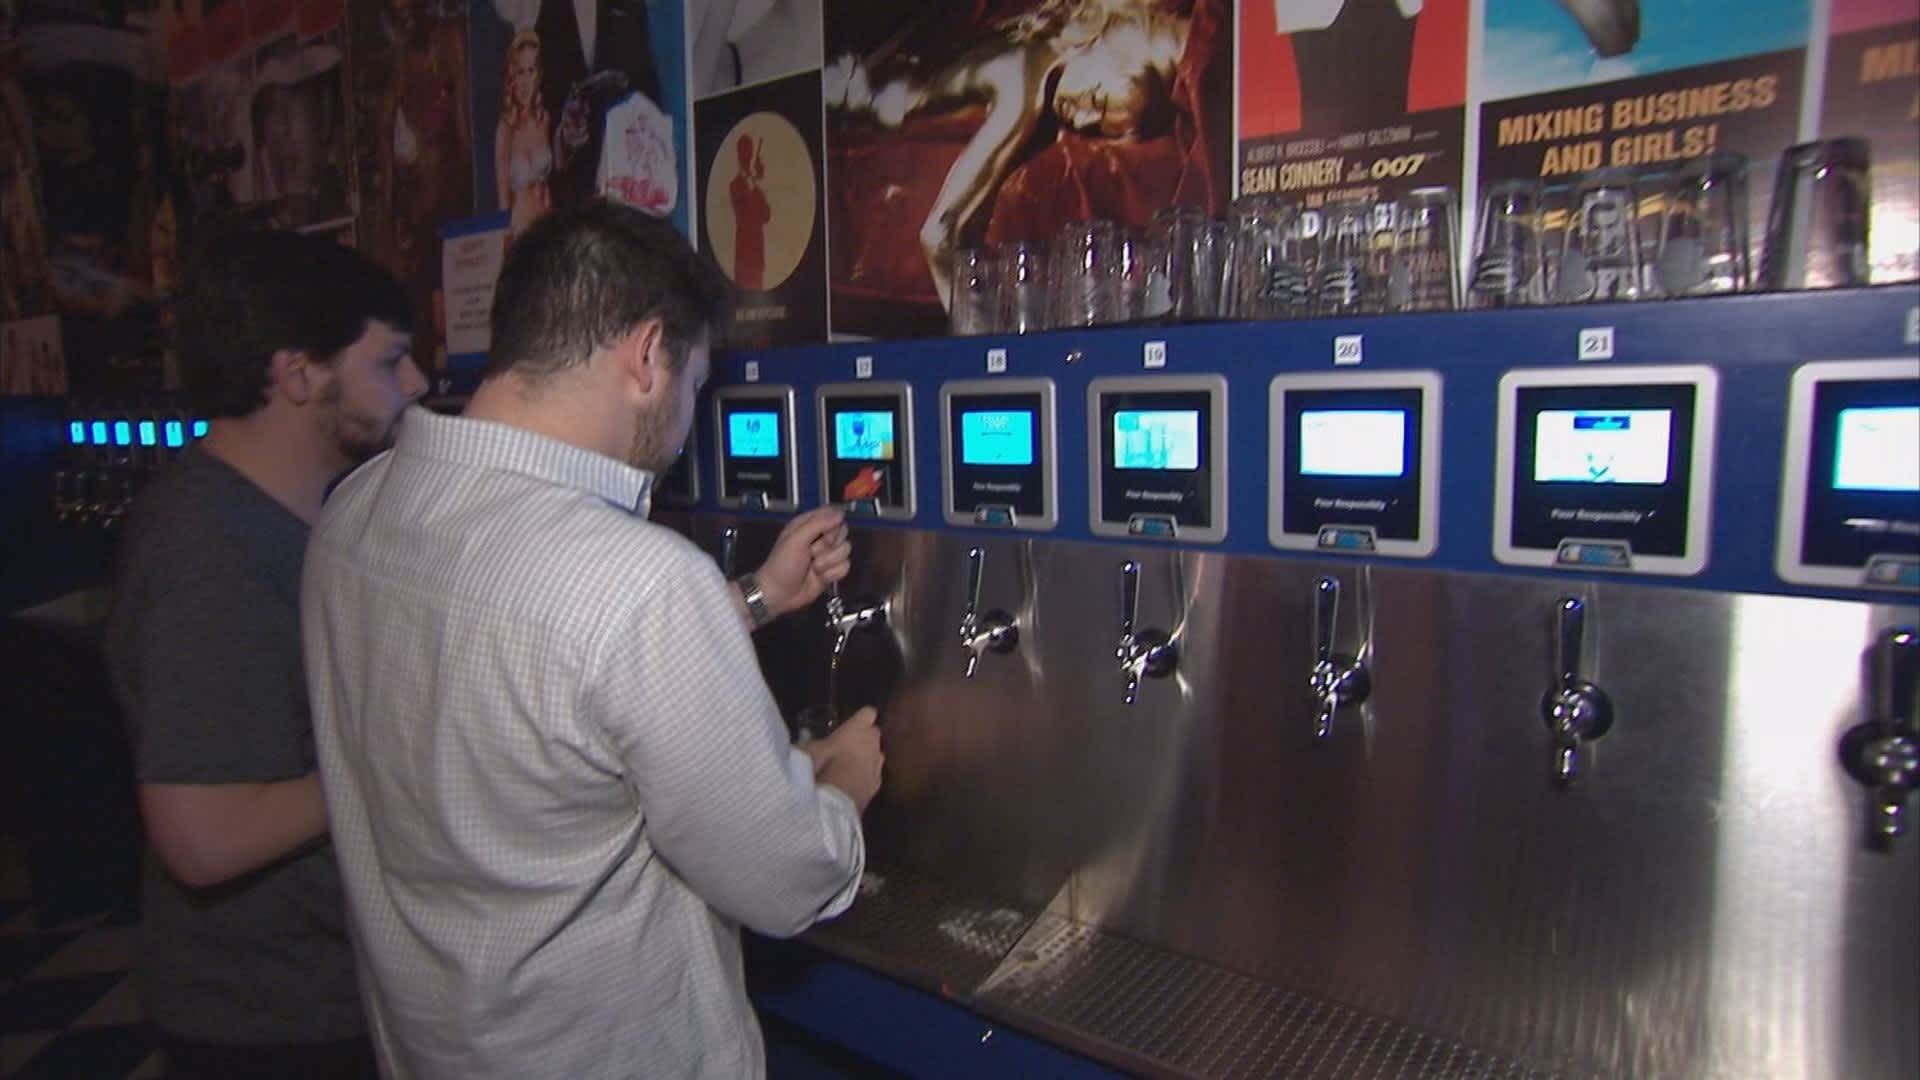 Tapping into self service, with beer as the tool